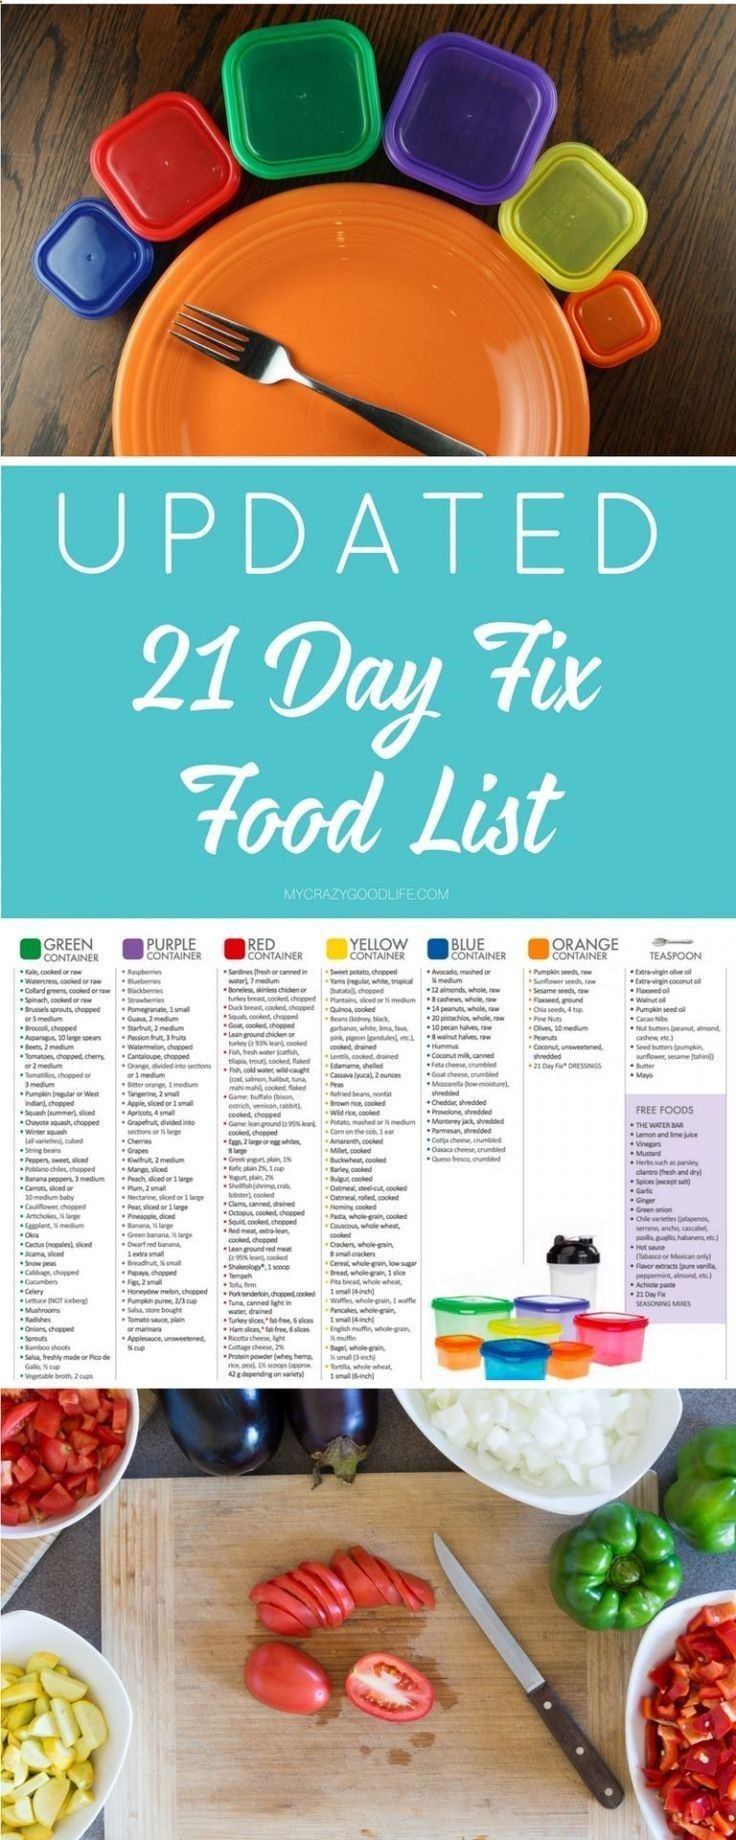 Diet Tips Eat Stop Eat This expanded and updated 21 Day